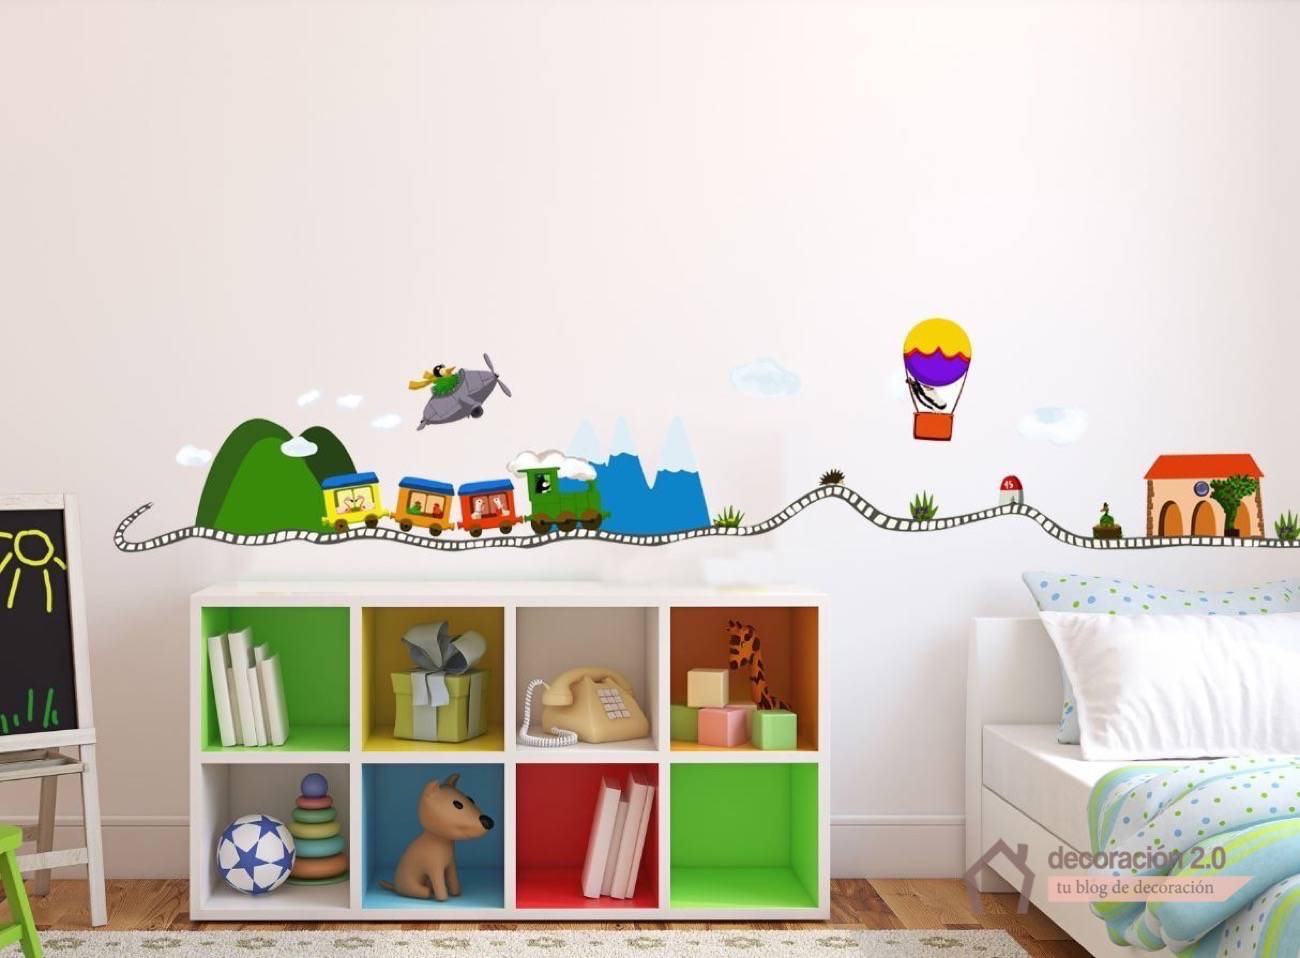 5 ideas diy para decorar nuestras habitaciones infantiles for Ideas decoracion habitaciones bebes